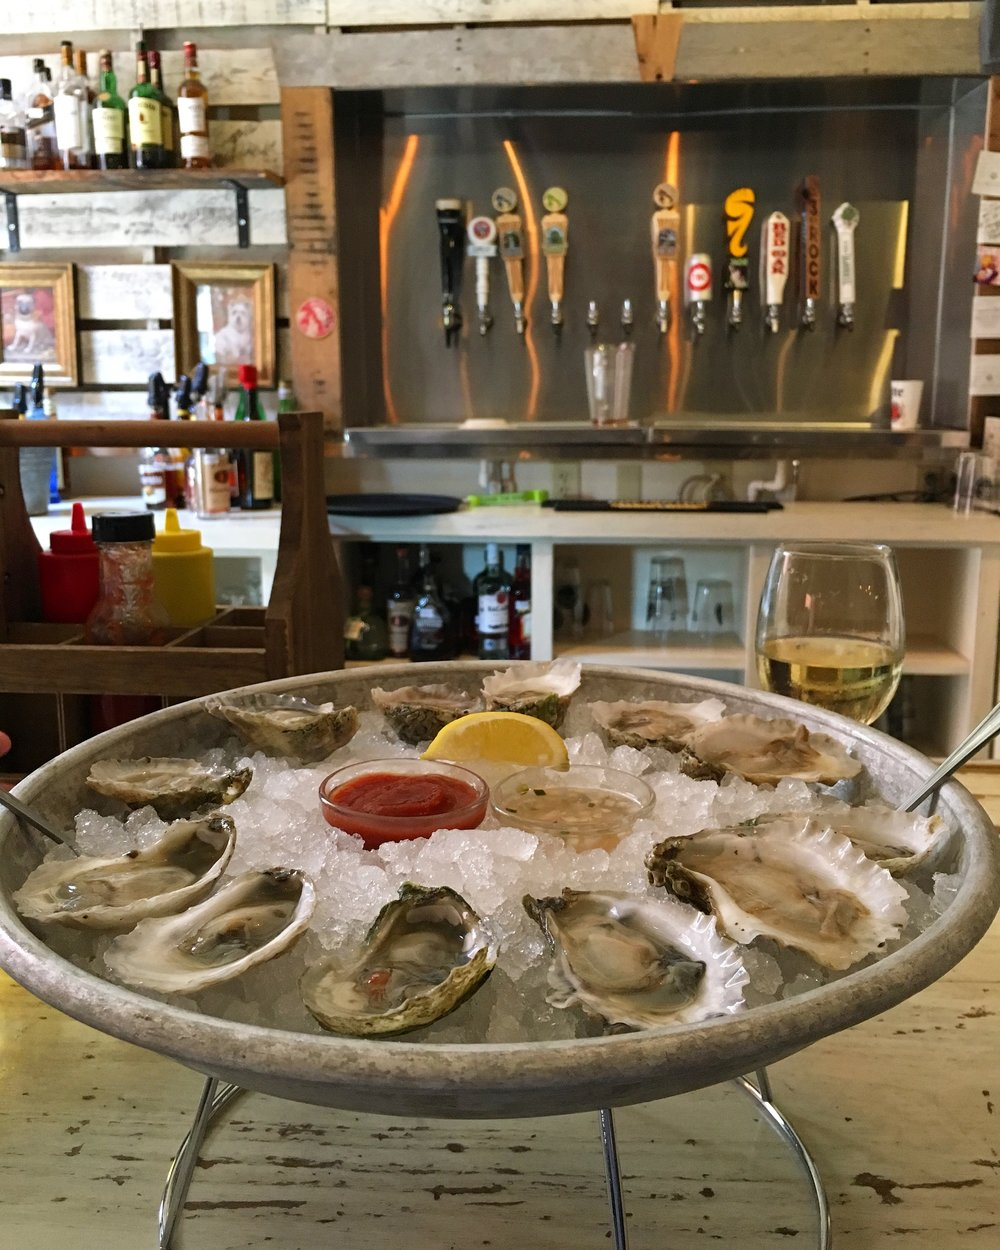 A dozen Harker's Island oysters is a fitting way to start lunch at The Boiler Room!